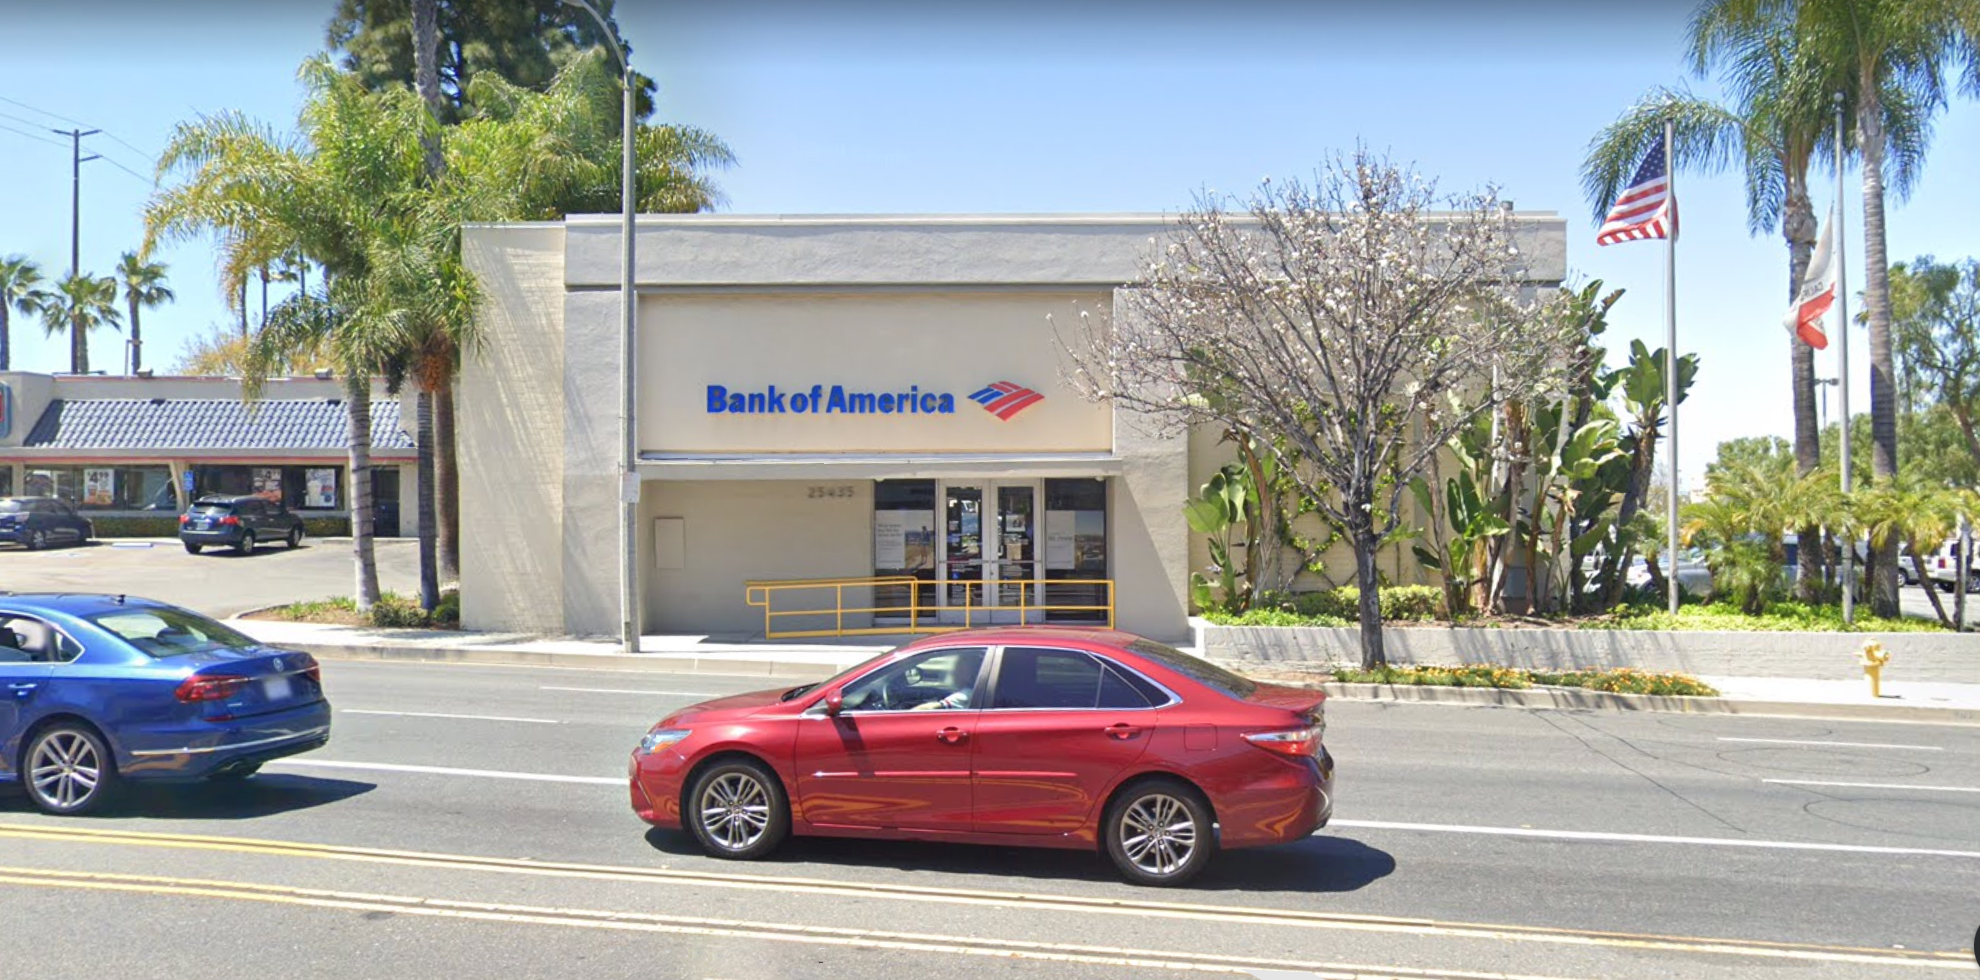 Bank of America financial center with walk-up ATM   25435 Crenshaw Blvd, Torrance, CA 90505